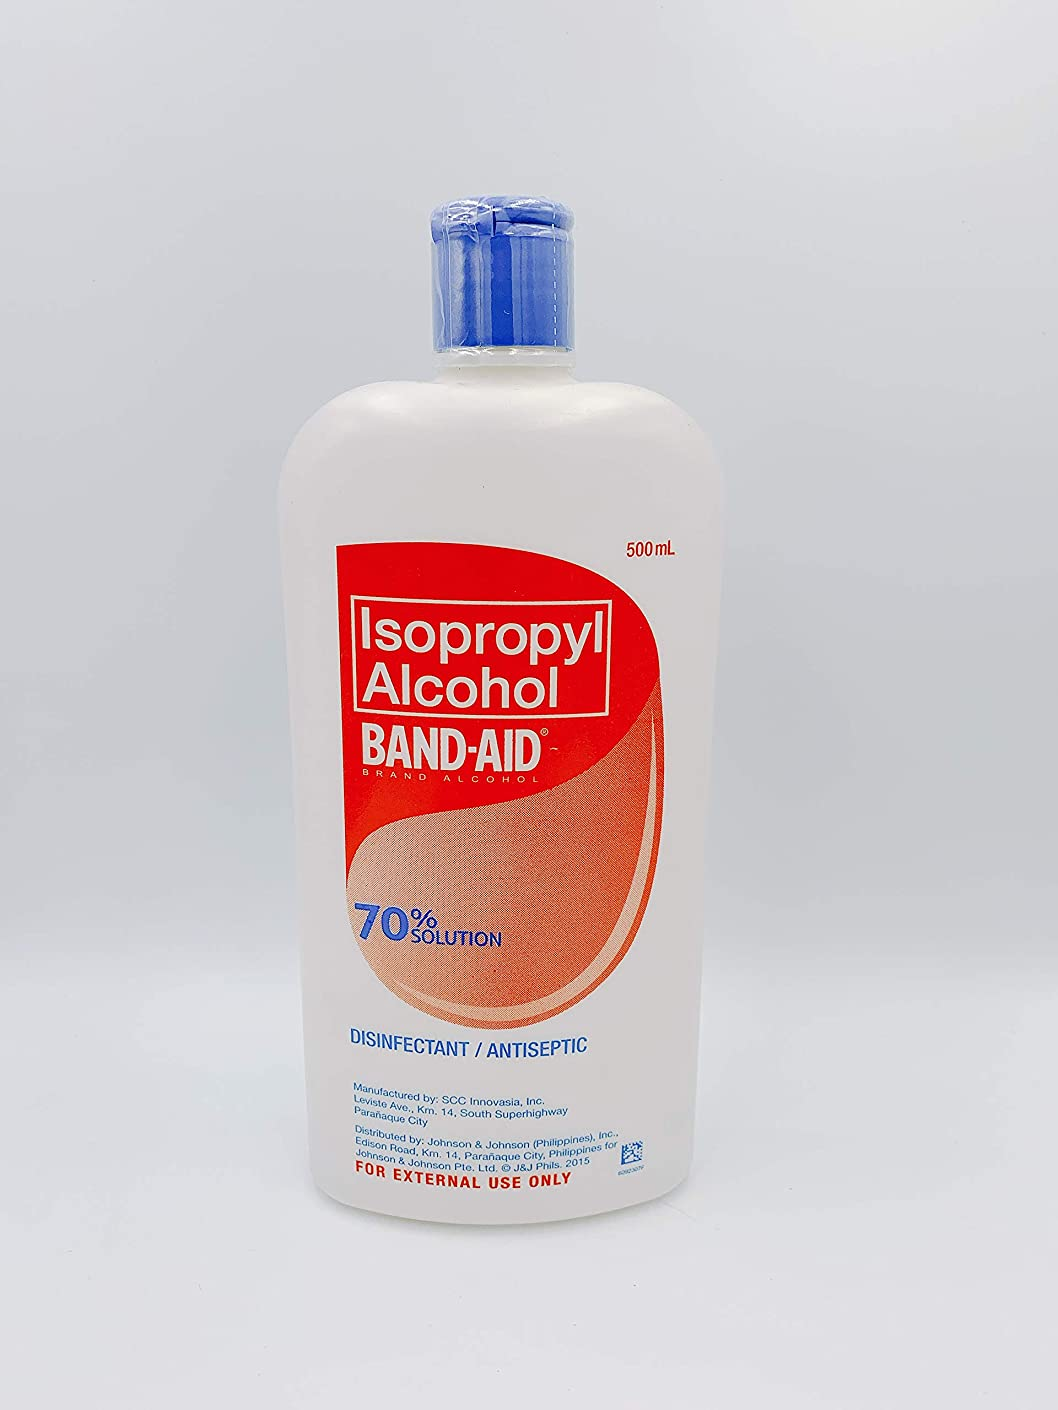 期限切れ限り森BAND-AID Isopropyl Alcohol 70% SOLUTION 500ml